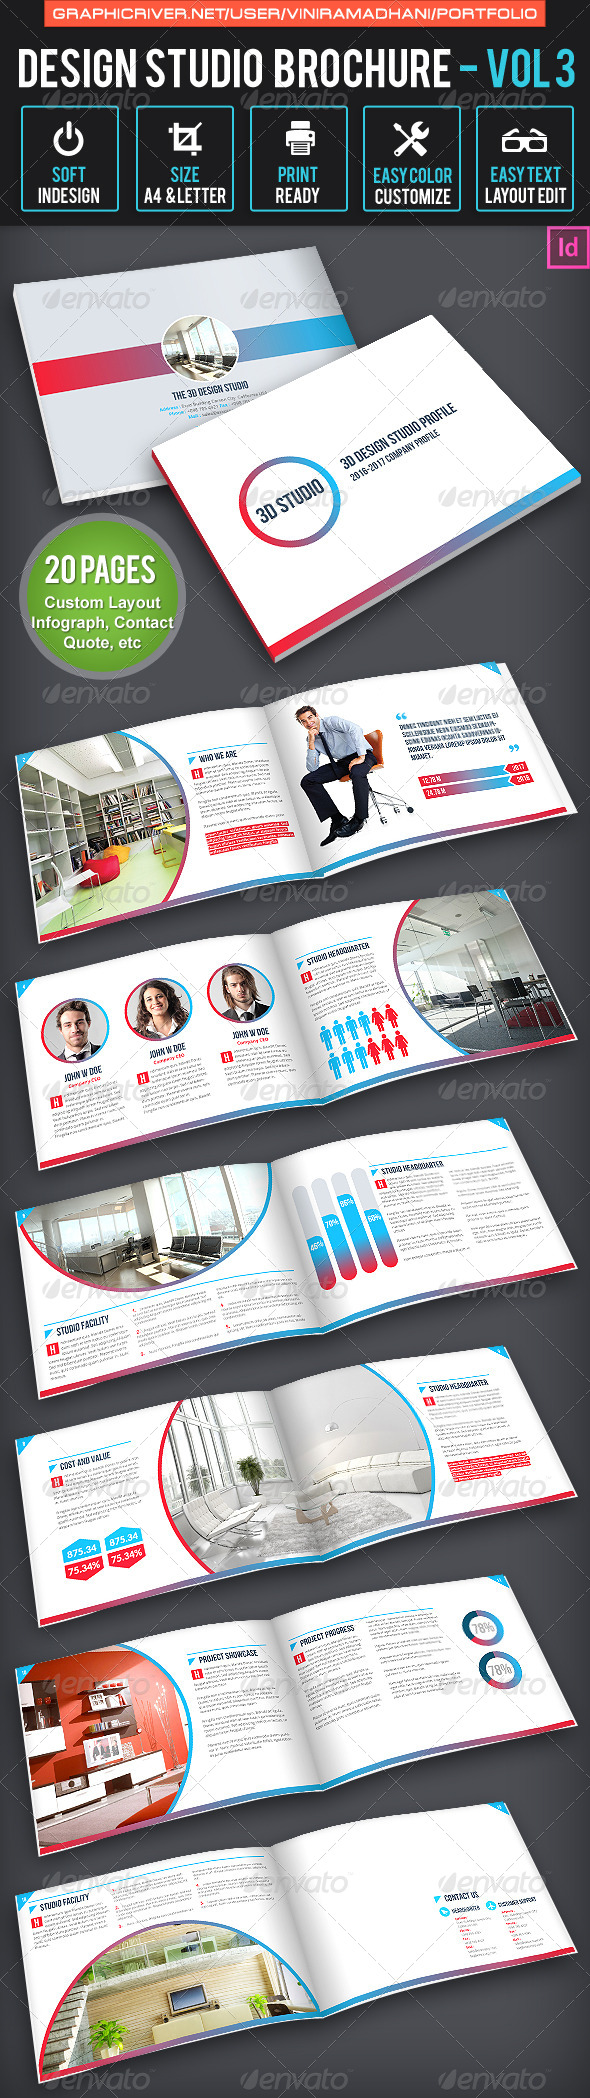 GraphicRiver Design Studio Brochure Volume 3 6648328